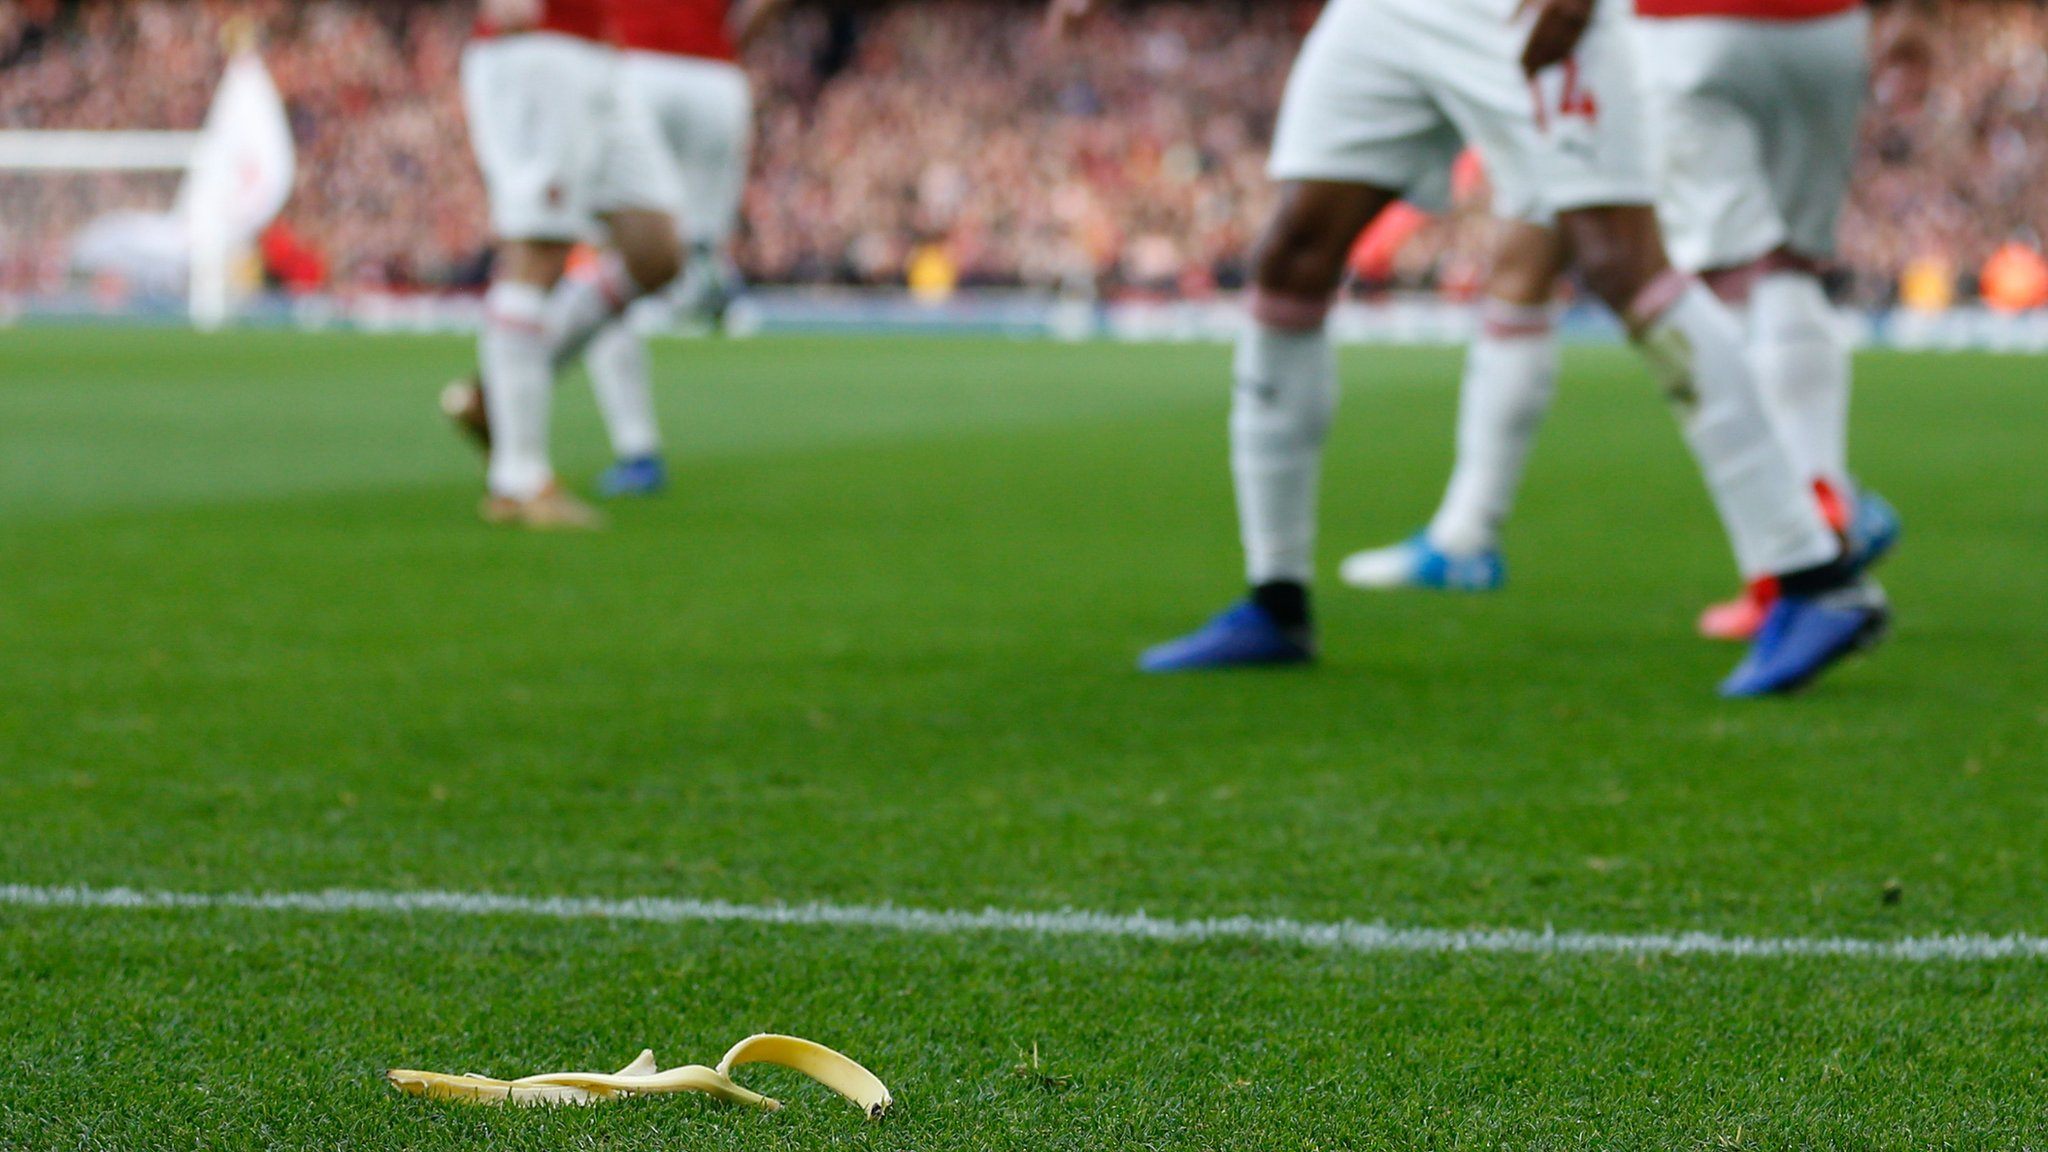 Tottenham fan fined and banned for throwing banana skin at Arsenal